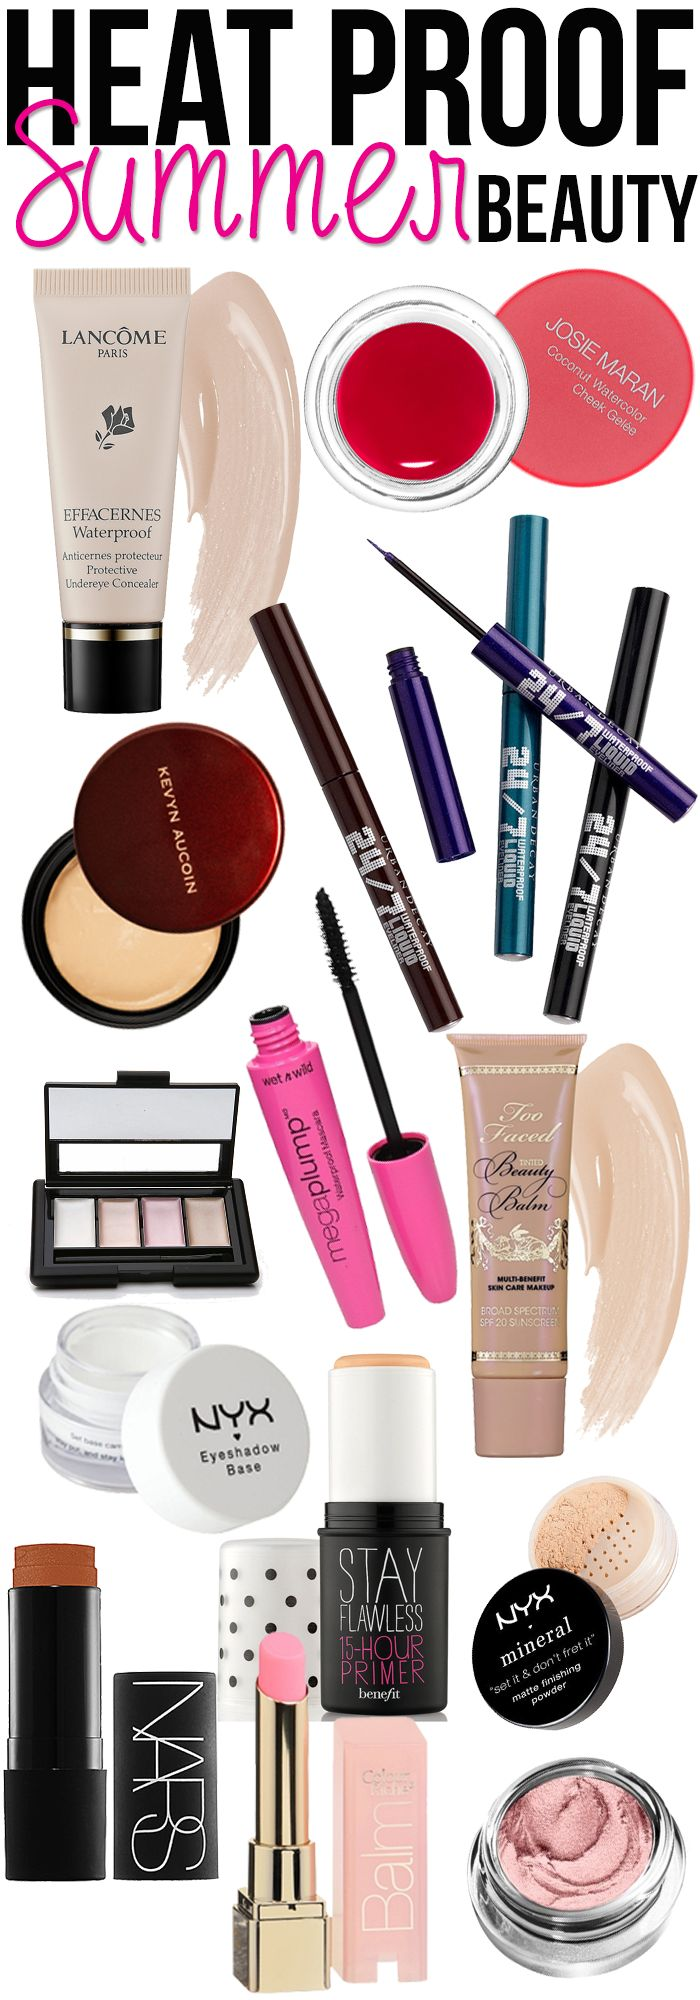 Summer Makeup Beauty Tips & Tricks! Products That won't melt away in the heat!